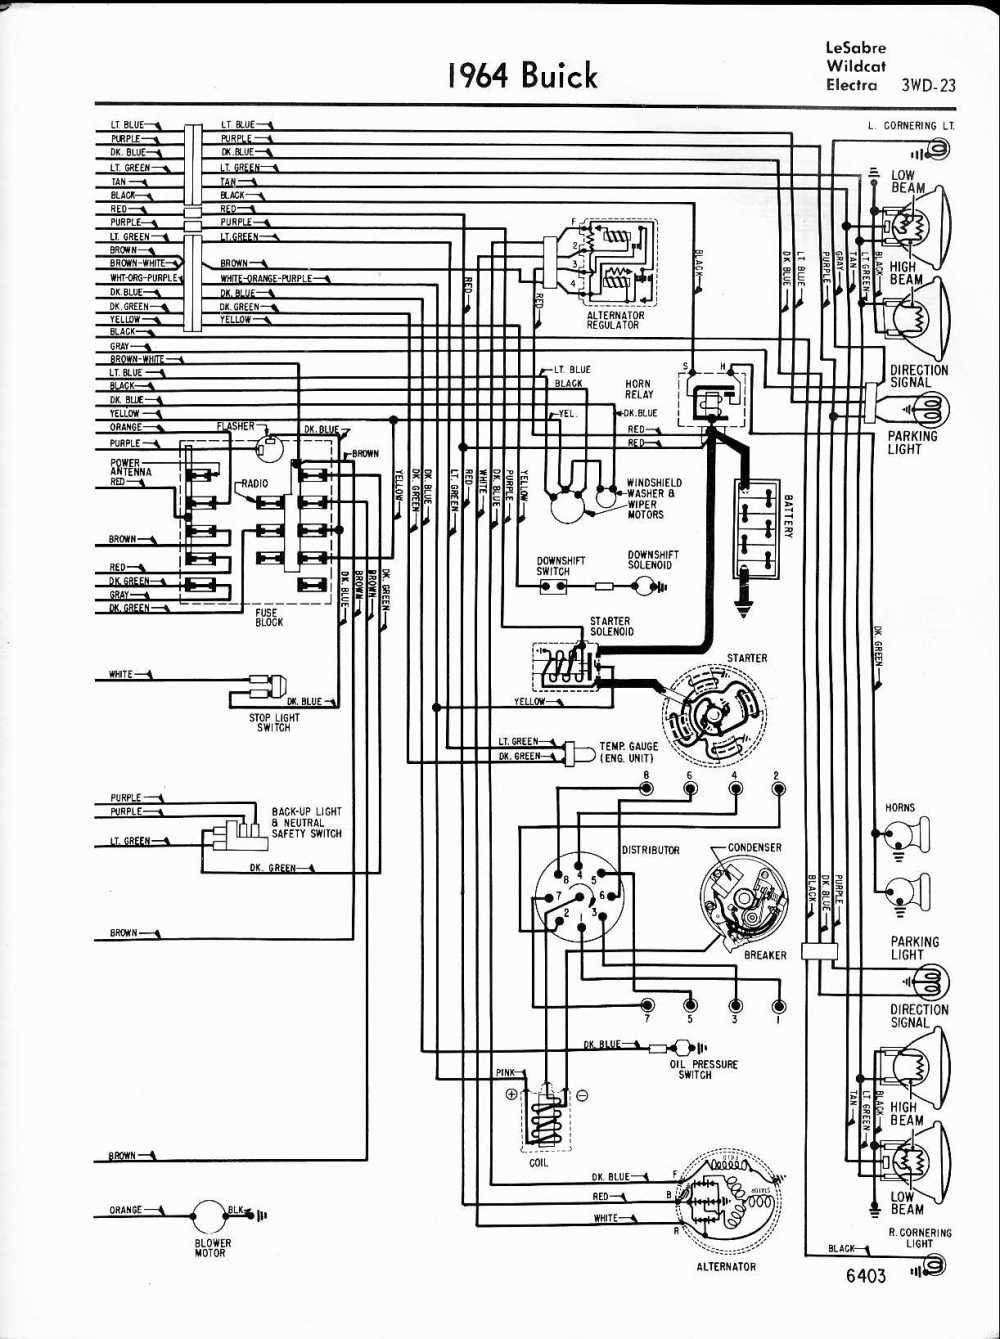 medium resolution of 1960 buick wiring diagram wiring diagram schematics 1998 buick lesabre wiring diagram 2000 buick lesabre wiring diagram model